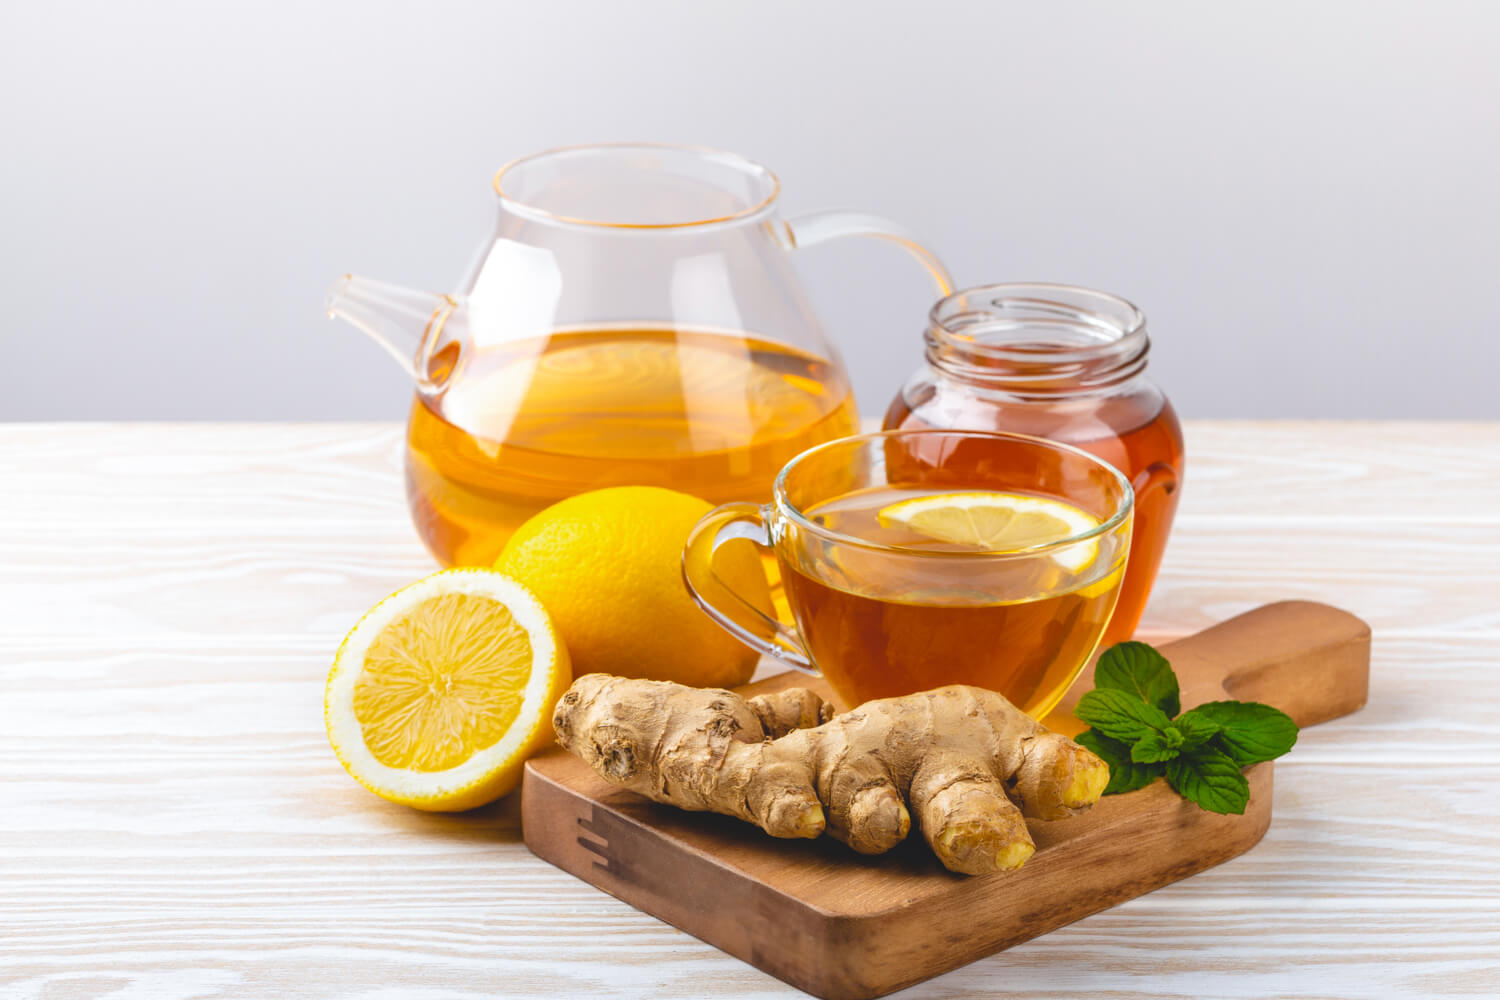 Home Remedies Dry cough